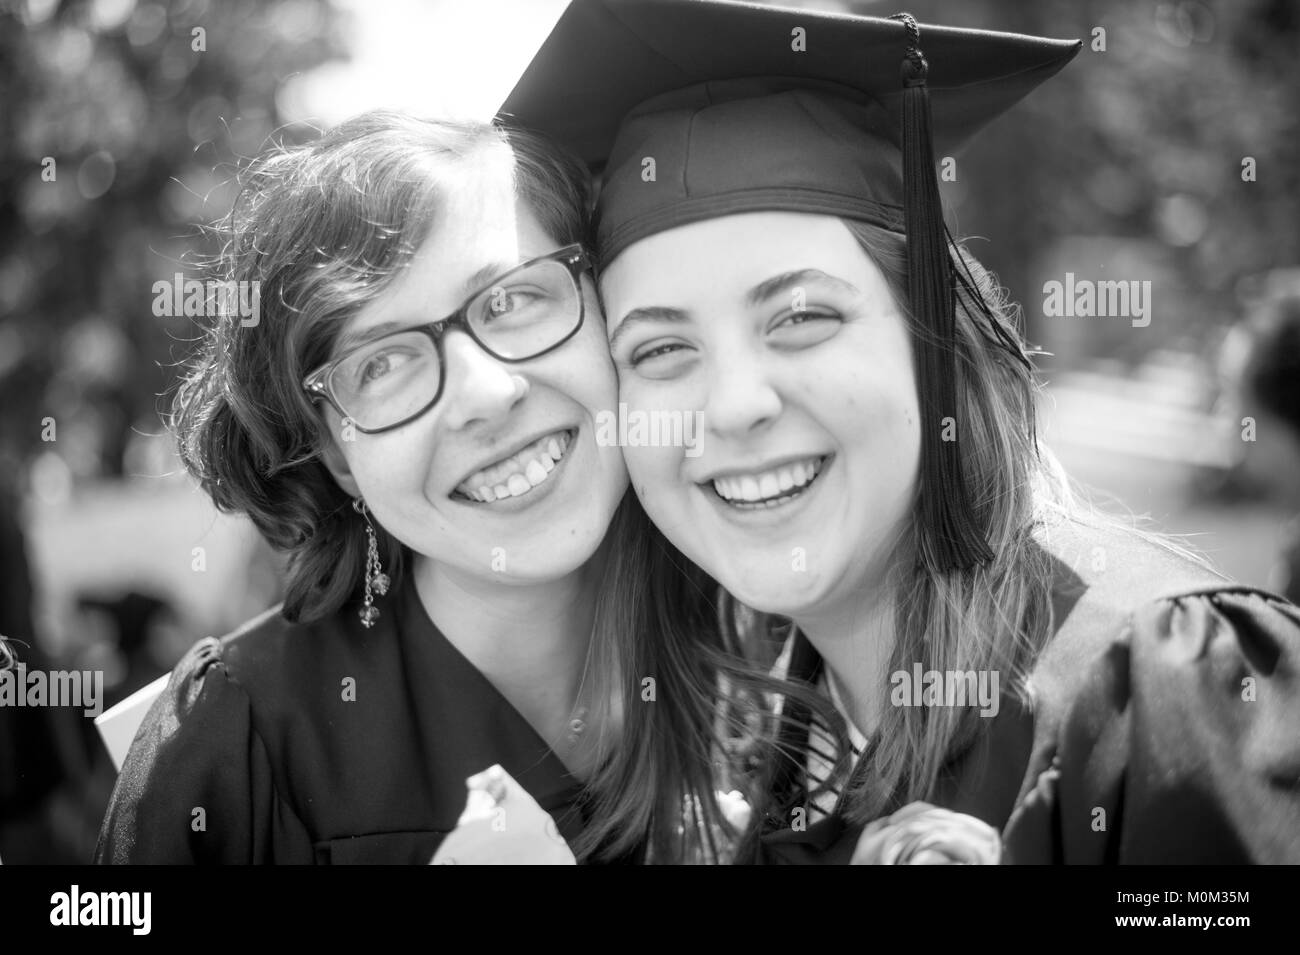 Two young female college graduates hug and smile with one another, Swarthmore, Pennsylvania - Stock Image